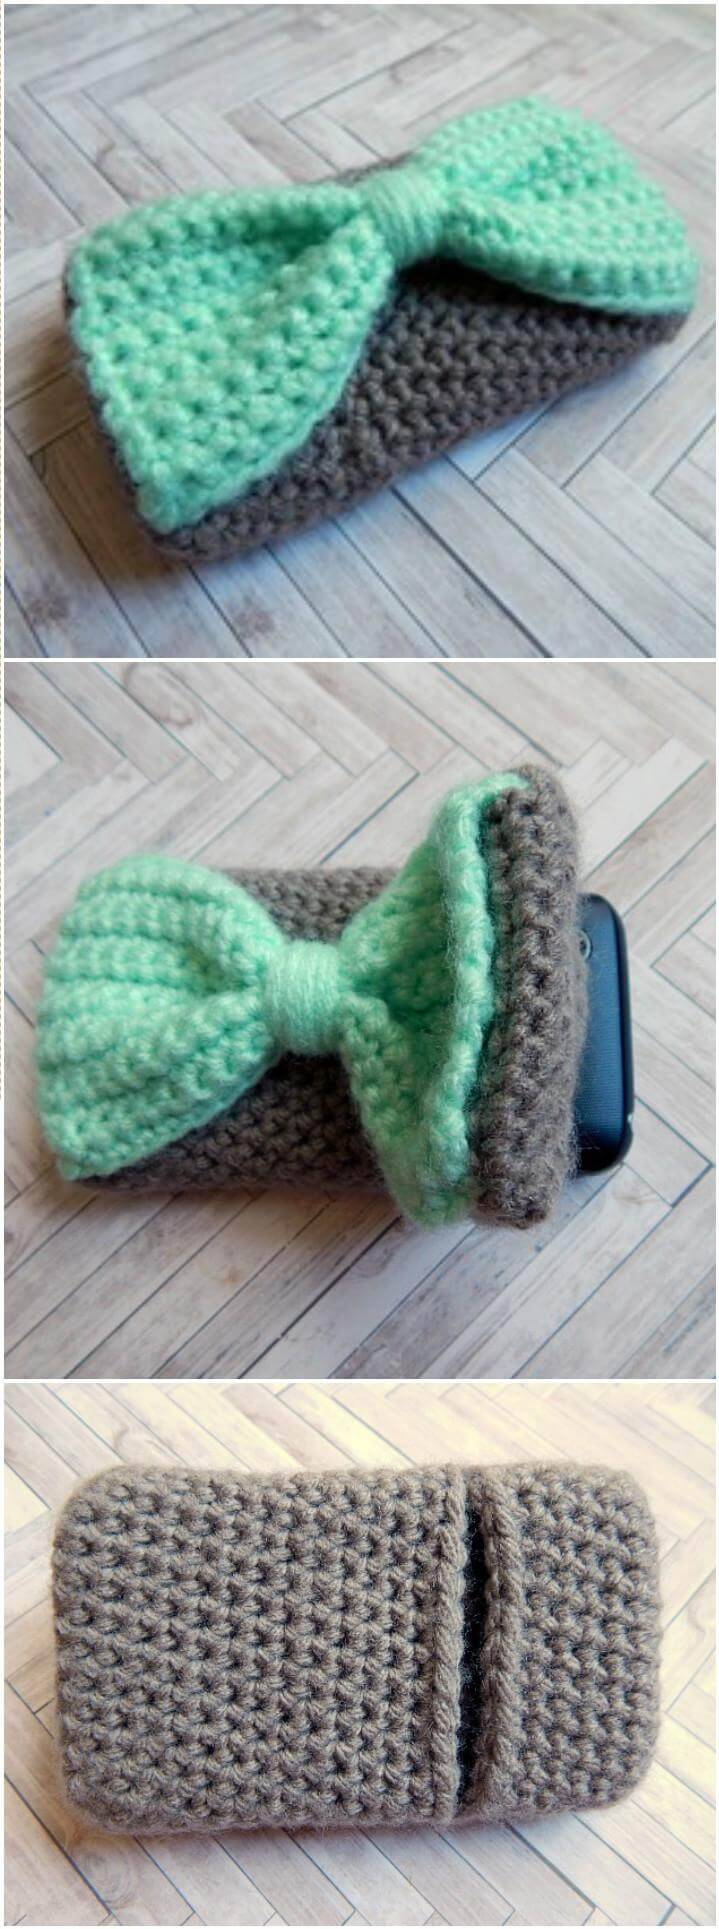 50 Free Crochet Phone Case Patterns Diy Crafts